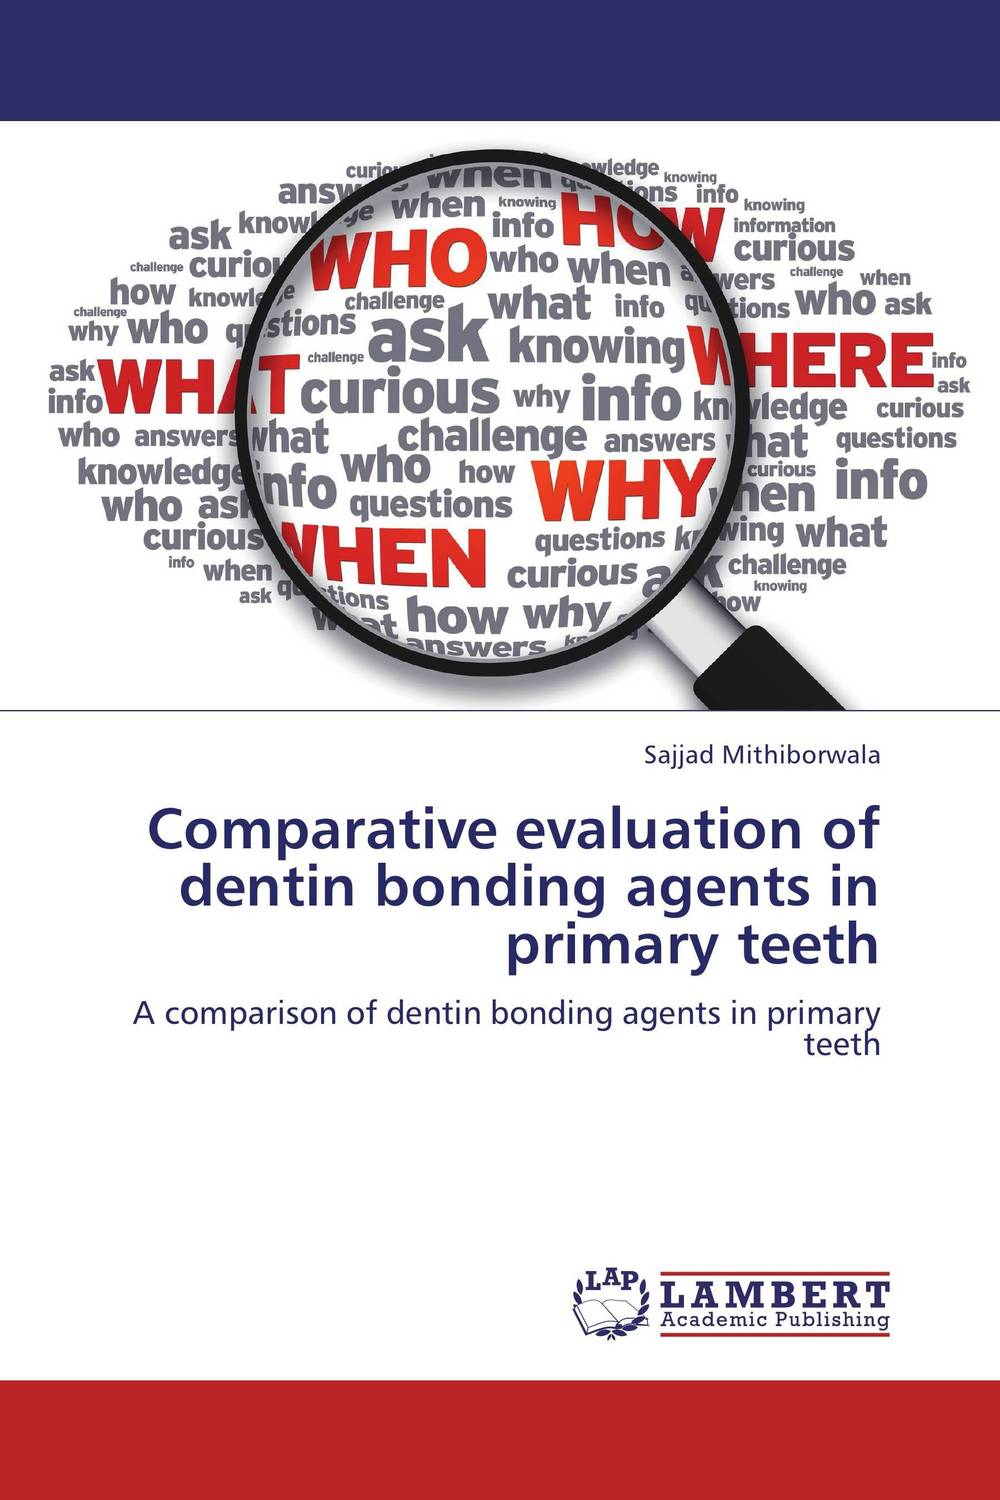 Comparative evaluation of dentin bonding agents in primary teeth the role of evaluation as a mechanism for advancing principal practice